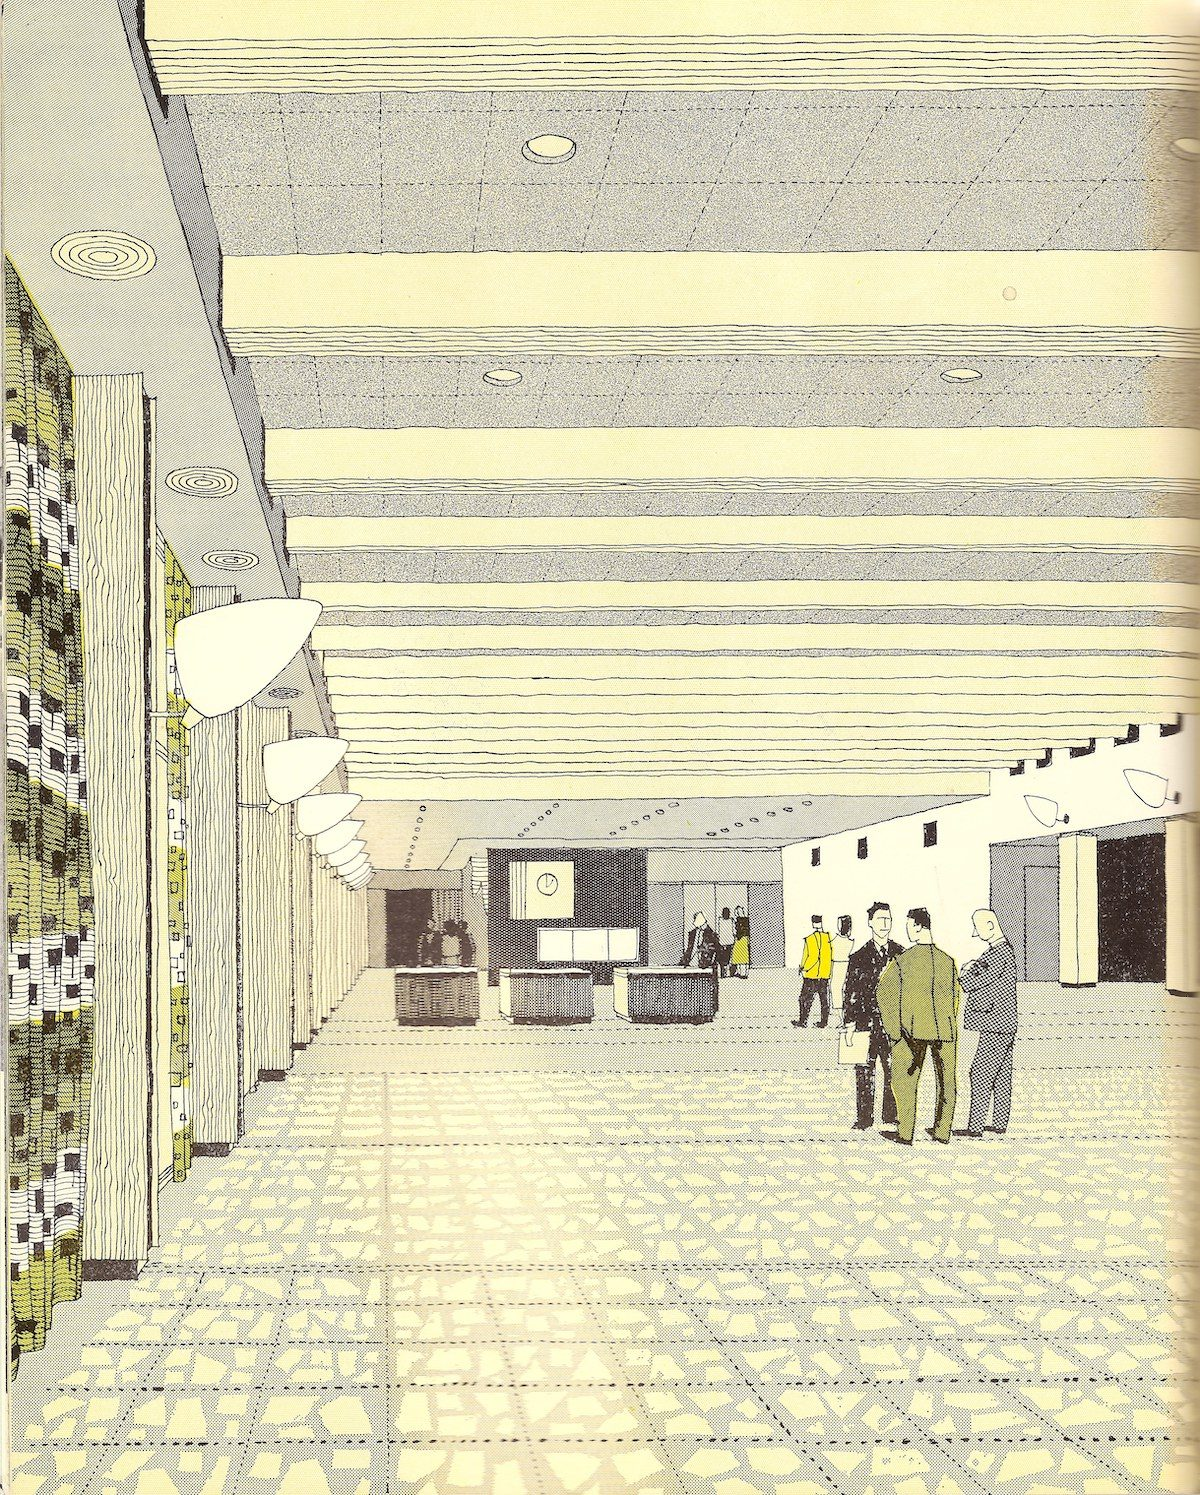 The Exhibition Hall, London Heathrow Airport - illustration by Gordon Cullen - 1956 Cullen produced many architectural drawings and sketches in the post-war period and this is typical of the style of his work. The interiors are very 'Brave New Elizabethan' in style, just after the Festival of Britain.